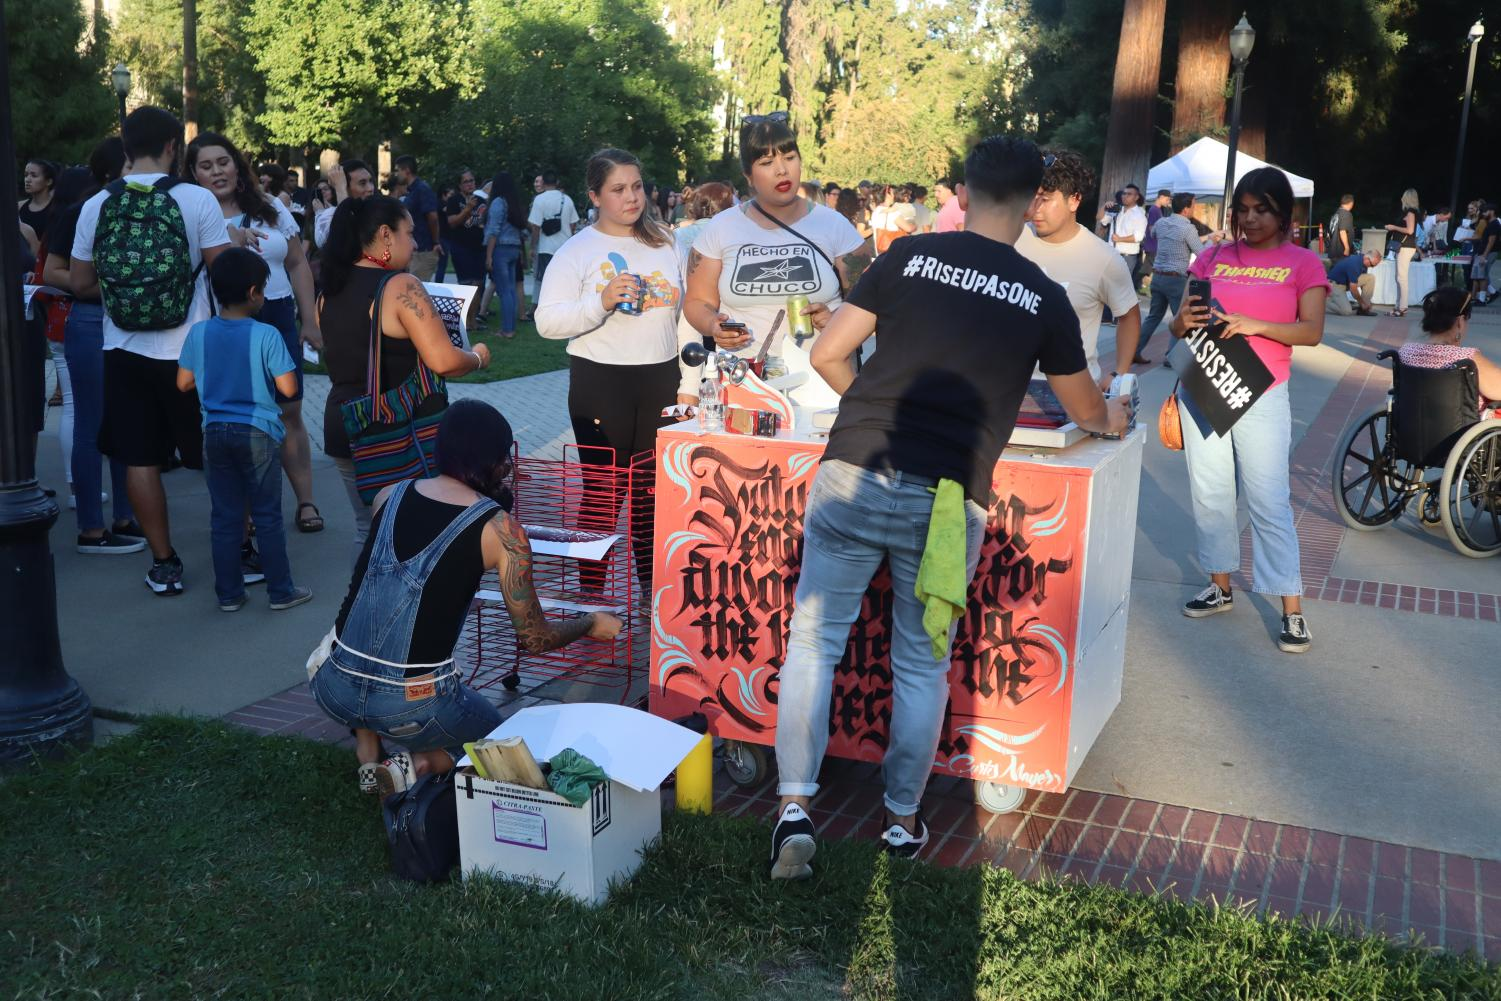 Sac State's Brown Issues honors victims of El Paso shooting